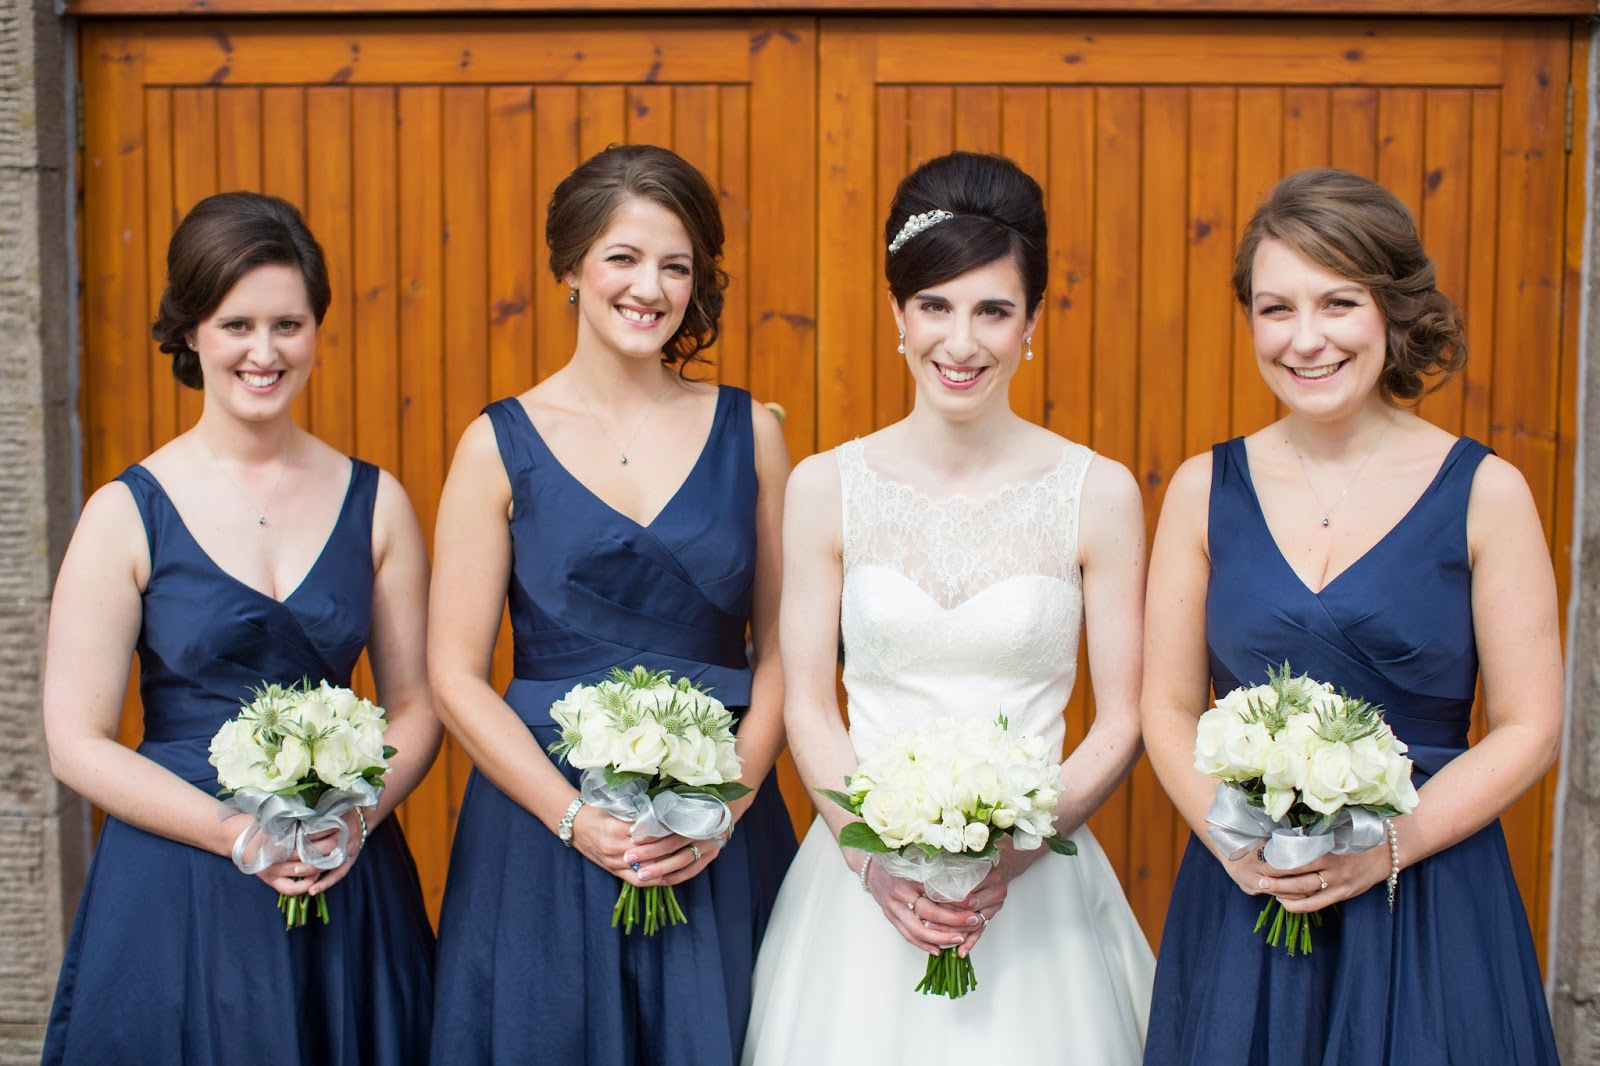 the bride and her bridesmaids all smile for a photograph after the wedding ceremony